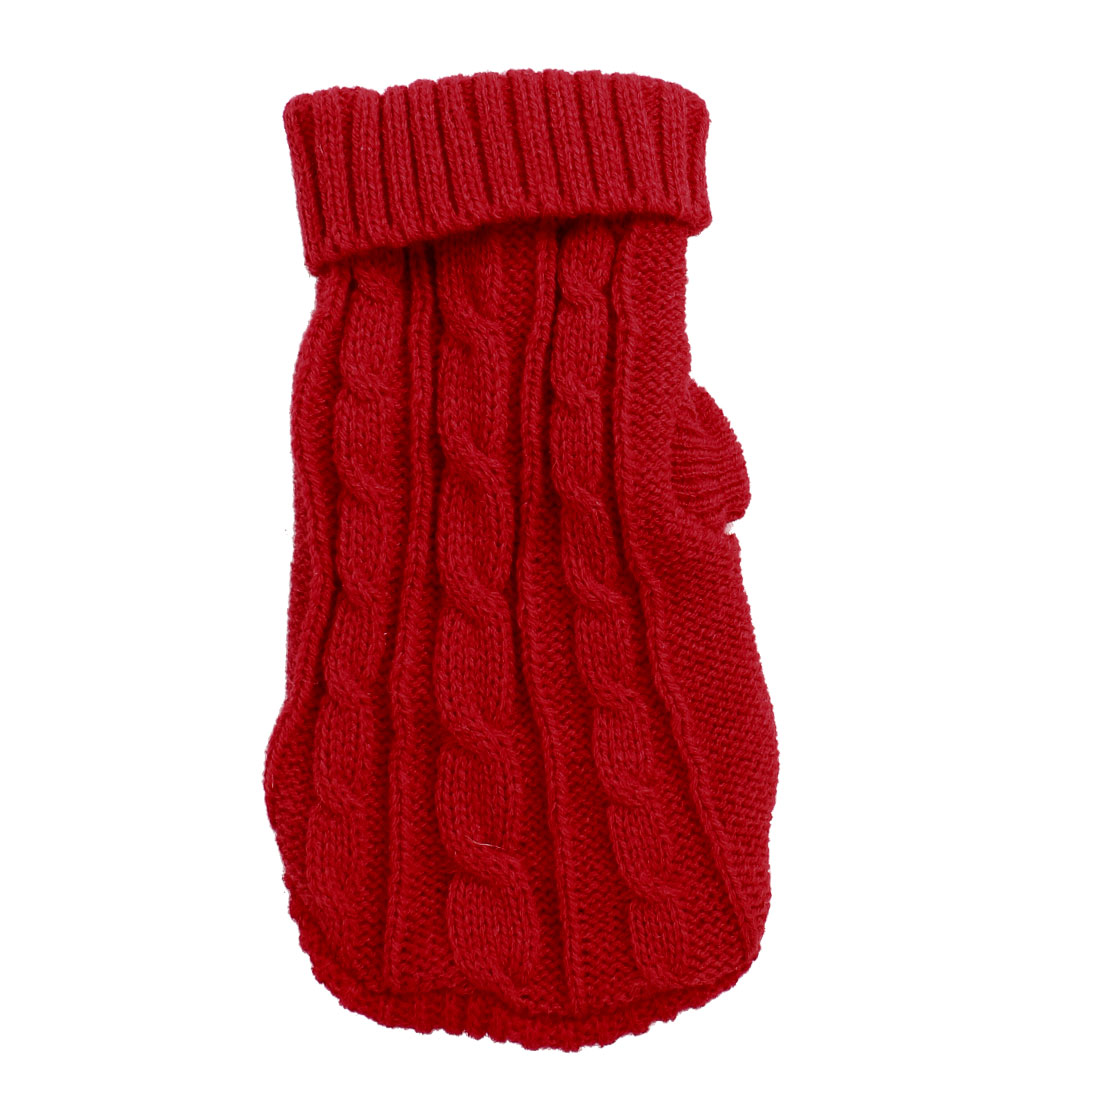 Pet Dog Yorkie Red Twisted Knit Ribbed Cuff Knitwear Apparel Sweater Size XXS